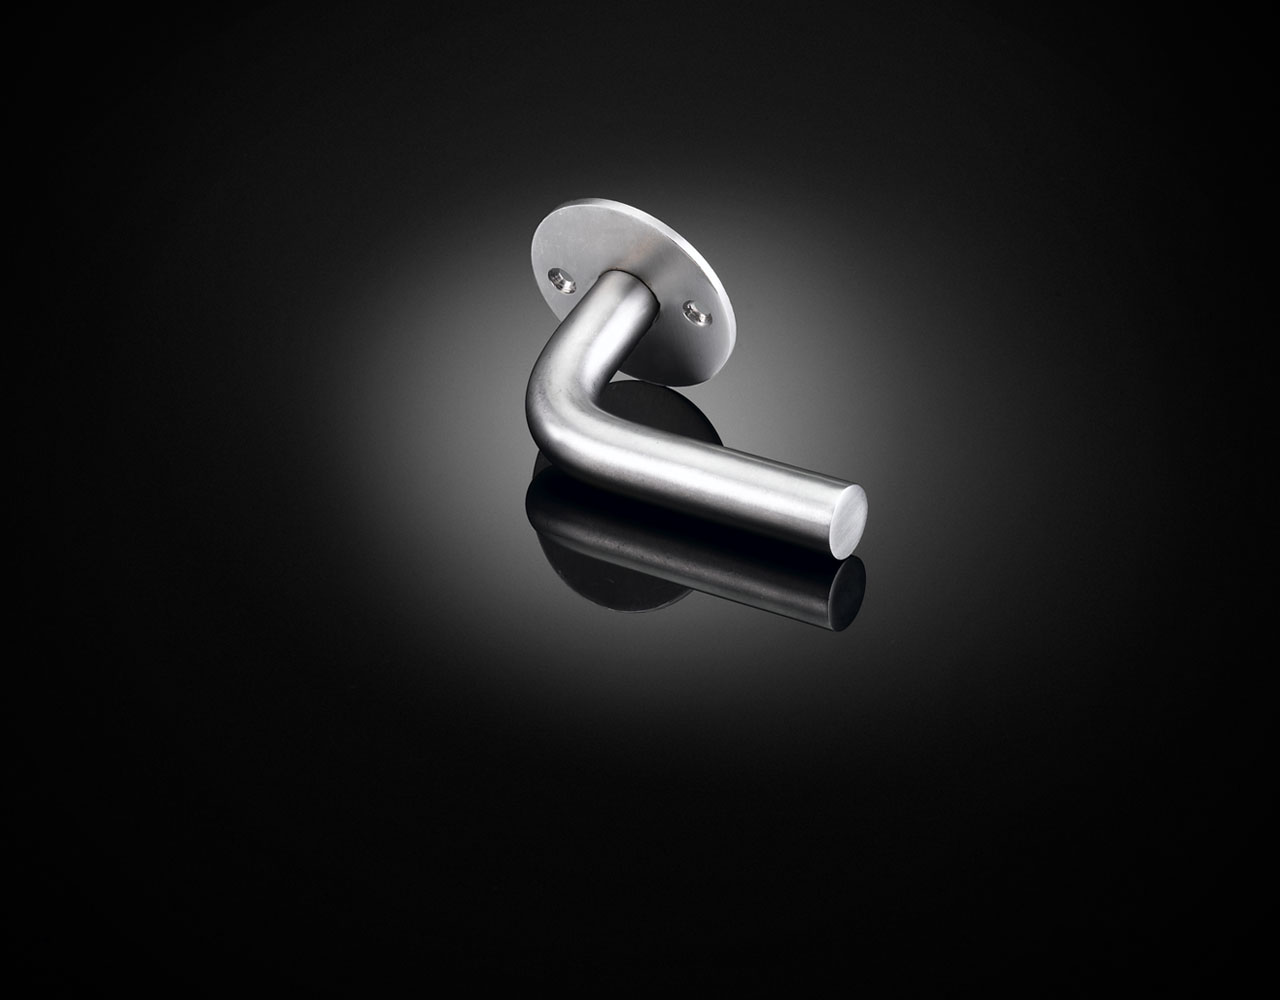 SBW07 basics window handle from Sergison Bates in satin stainless steel from izé